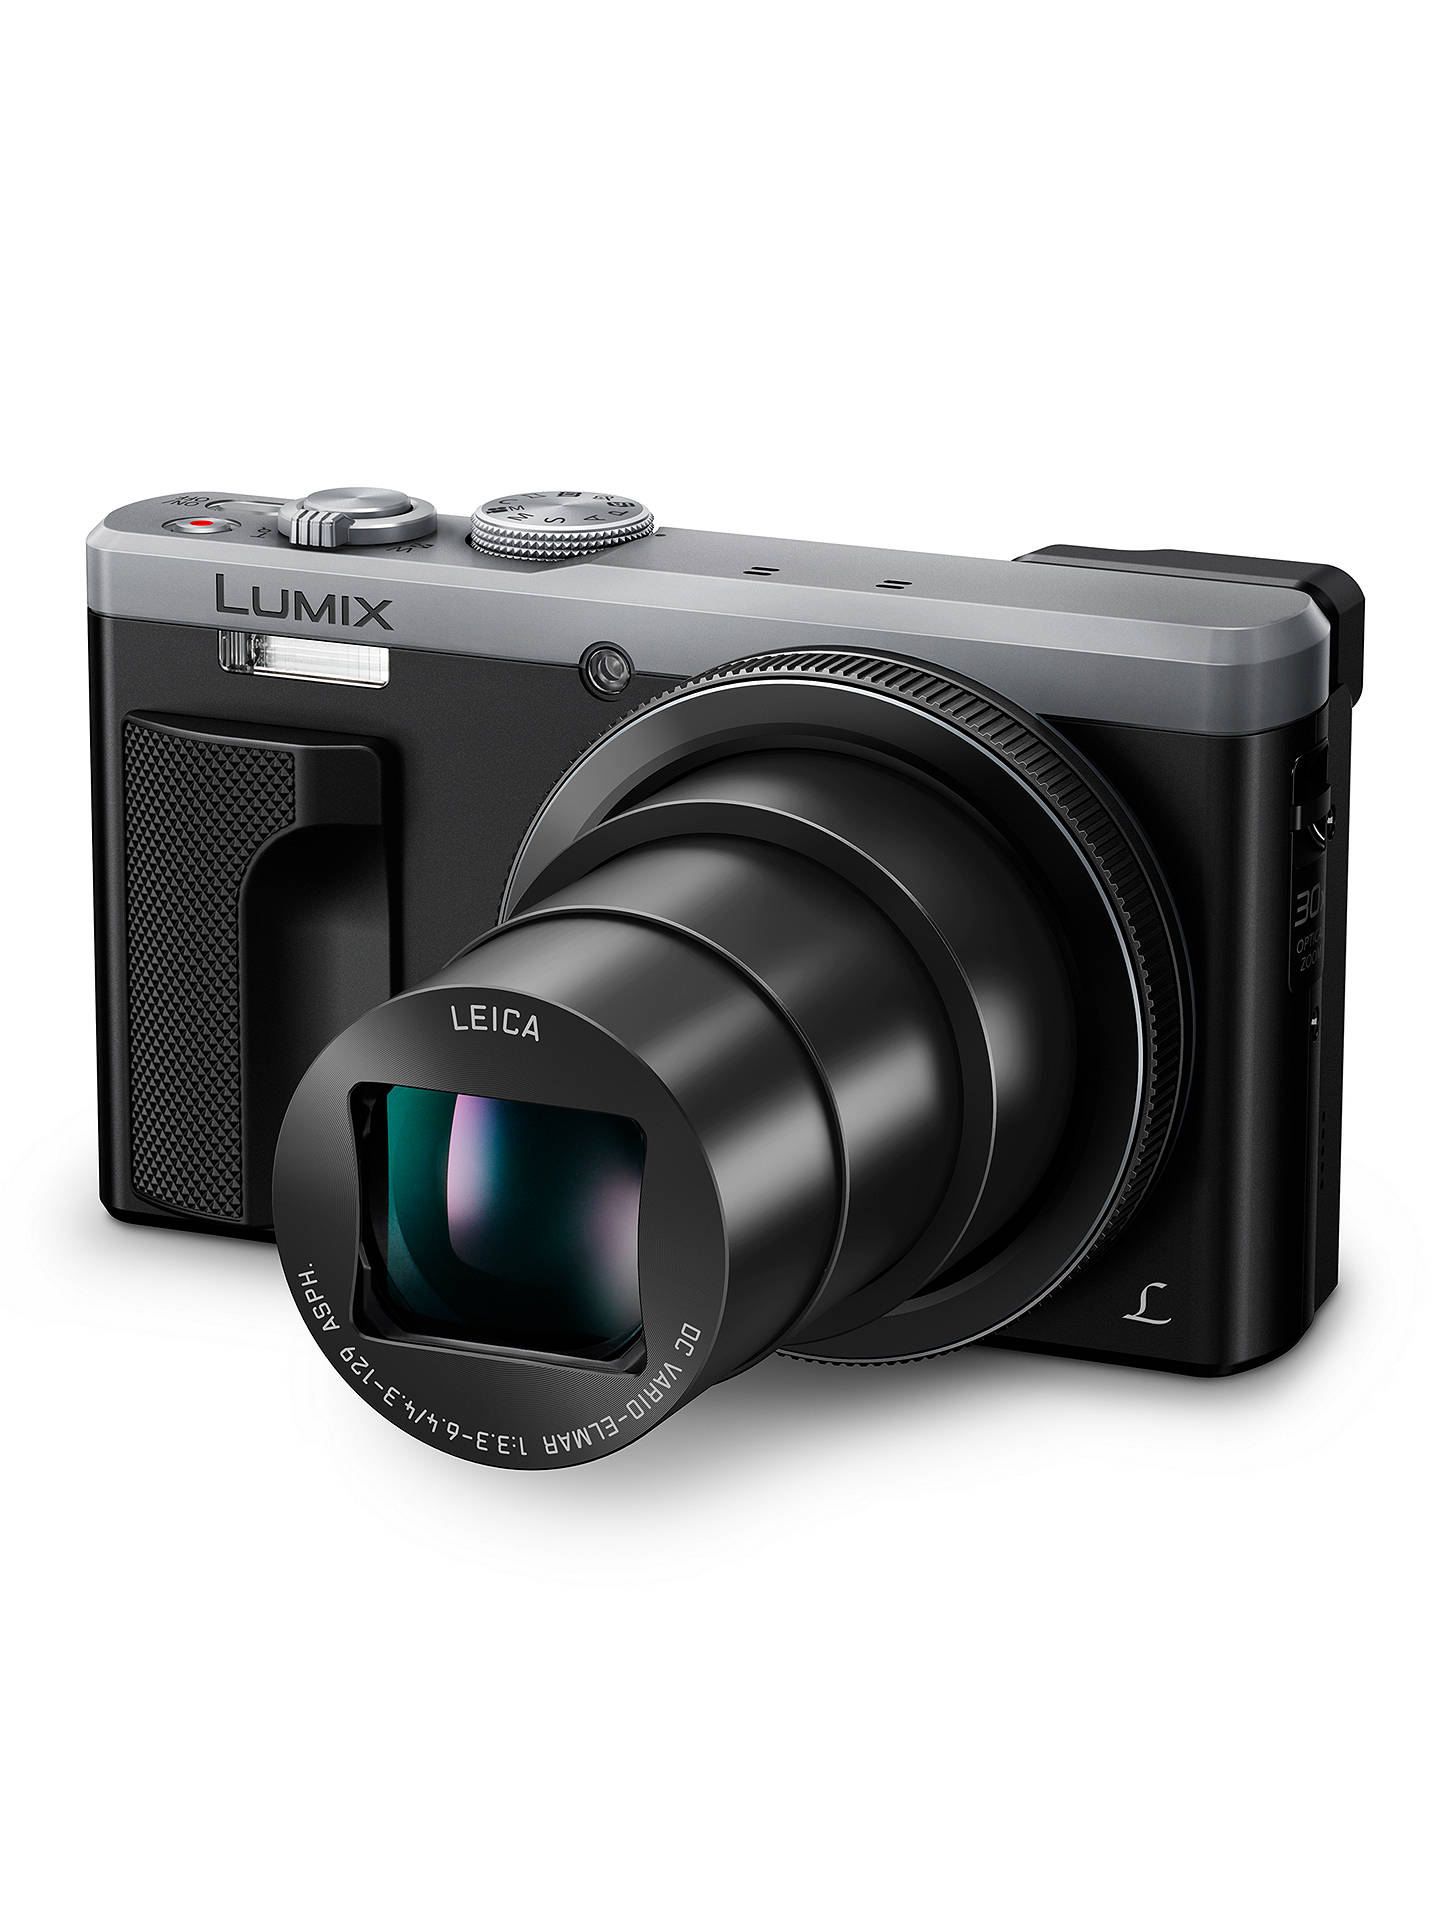 "Buy Panasonic LUMIX DMC-TZ80EB Super Zoom Digital Camera, 4K Ultra HD, 18.1MP, 30x Optical Zoom, Wi-Fi, EVF, 3"" LCD Touch Screen, Silver Online at johnlewis.com"